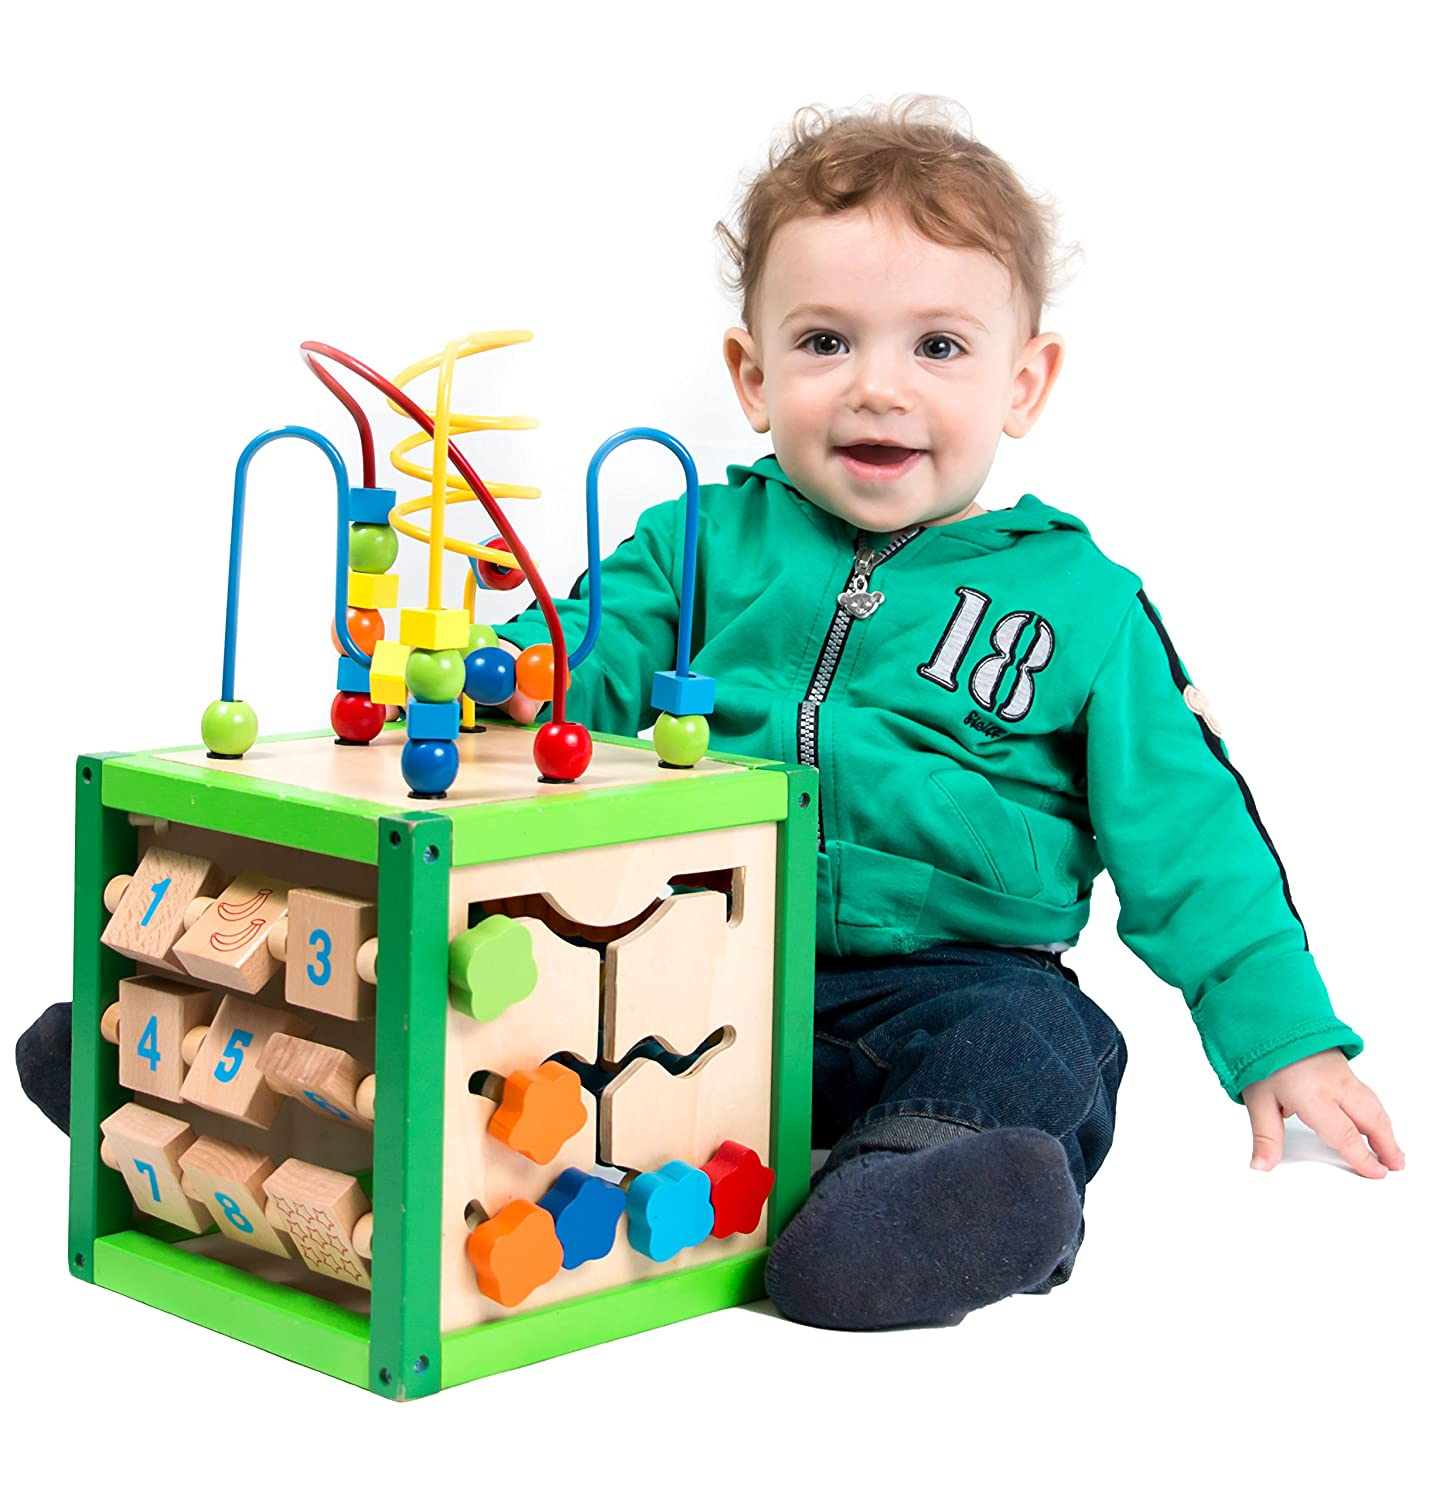 Amazon My First Learning Bead Maze Cube Activity Center by